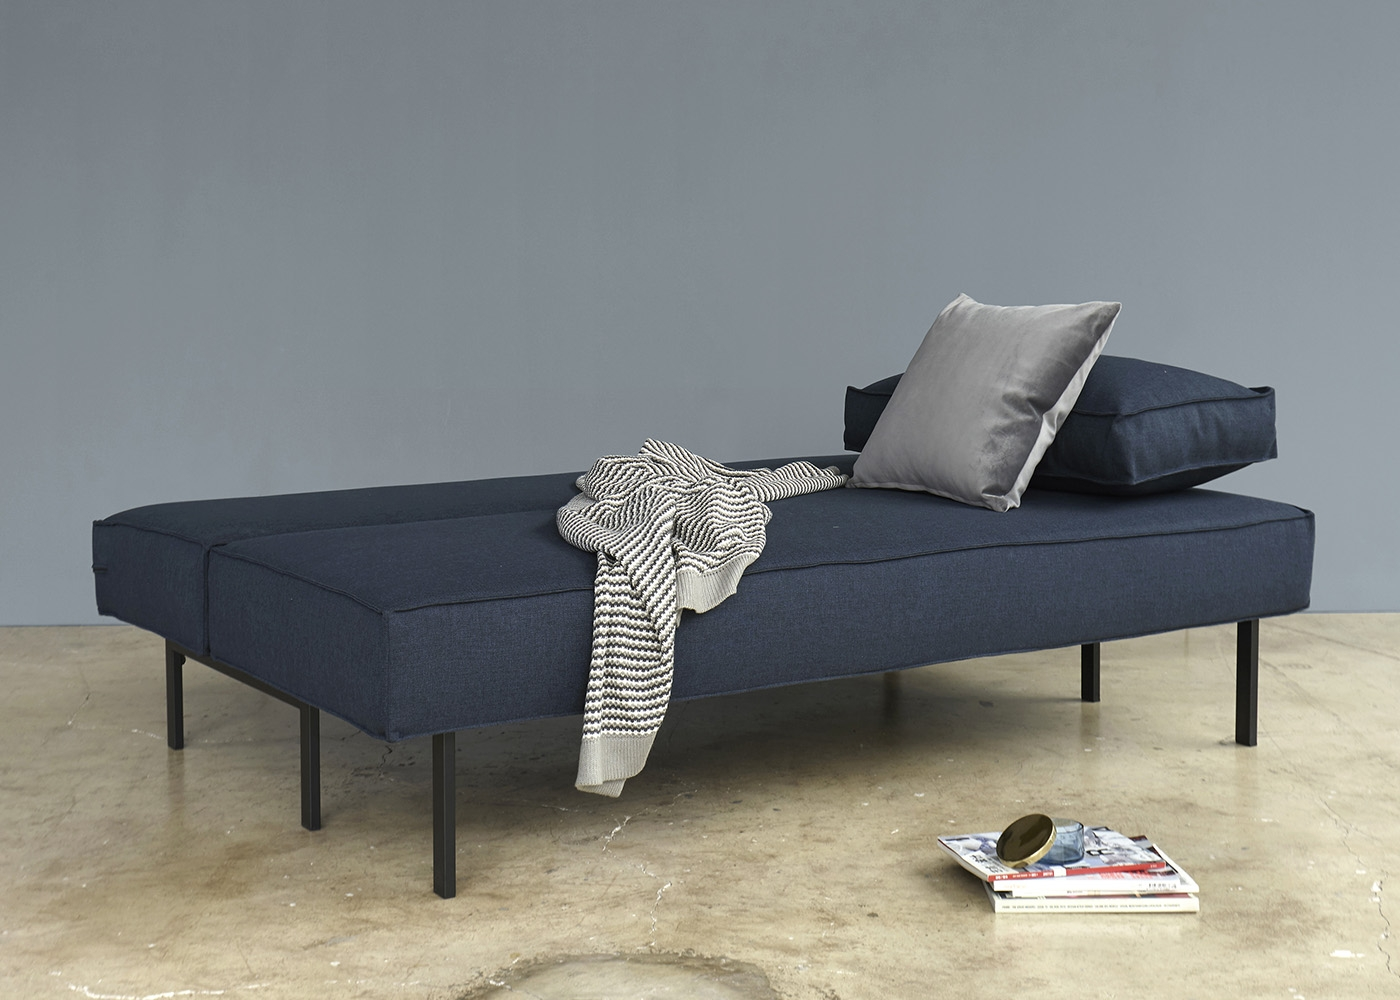 canap de qualit convertible en lit kaki bleu ou gris. Black Bedroom Furniture Sets. Home Design Ideas